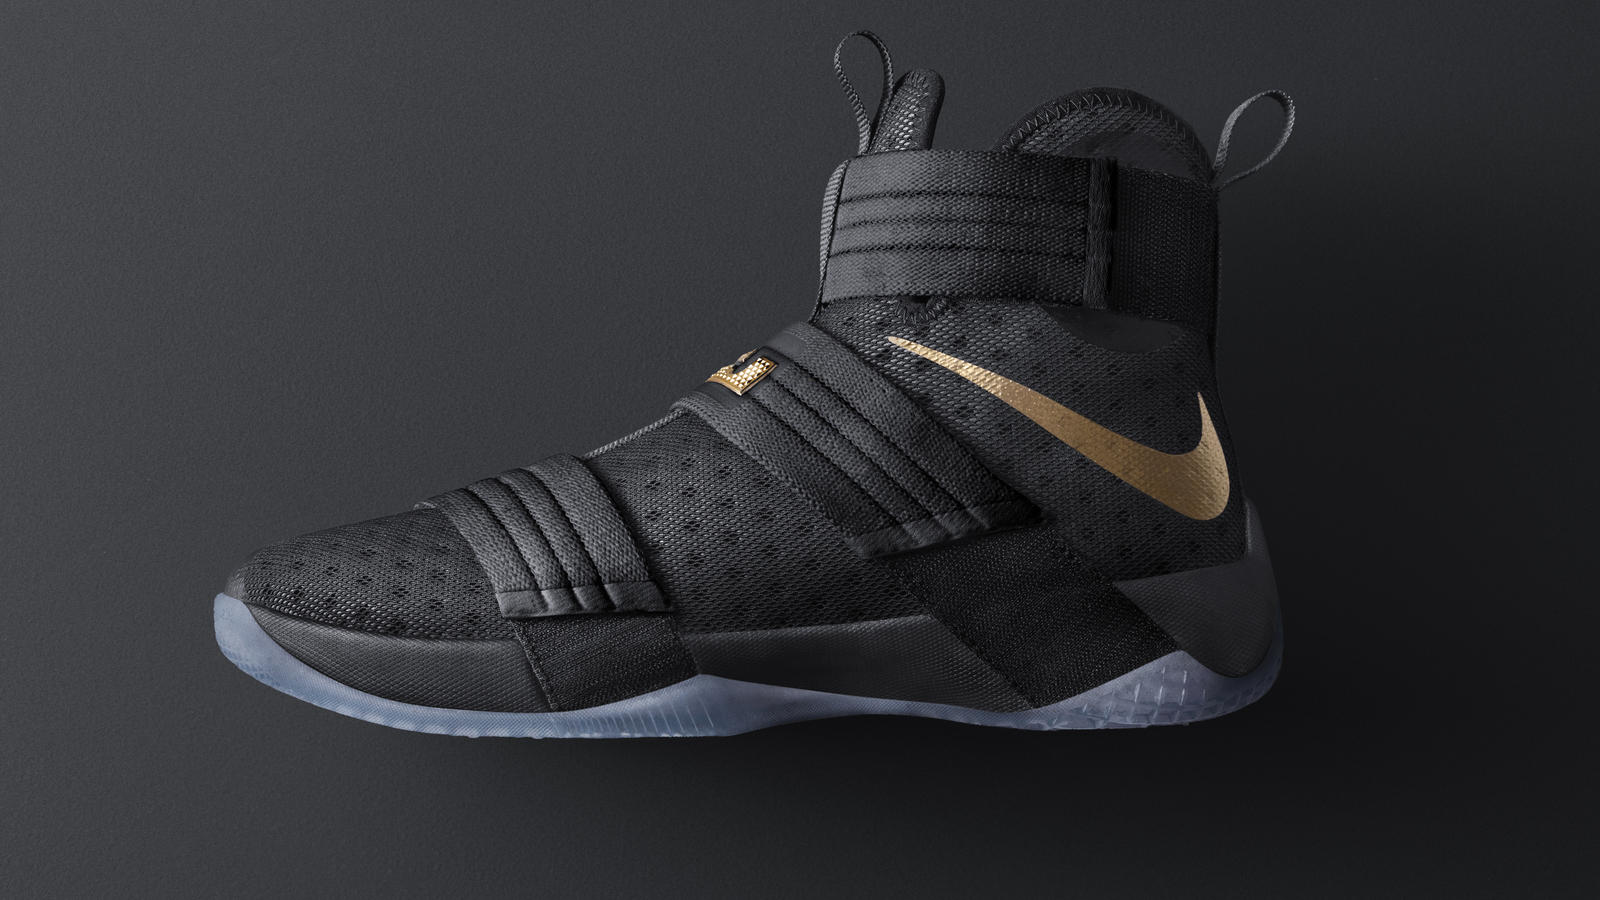 Always Believe. Share Image. Share Image. The Nike Zoom LeBron Soldier ...